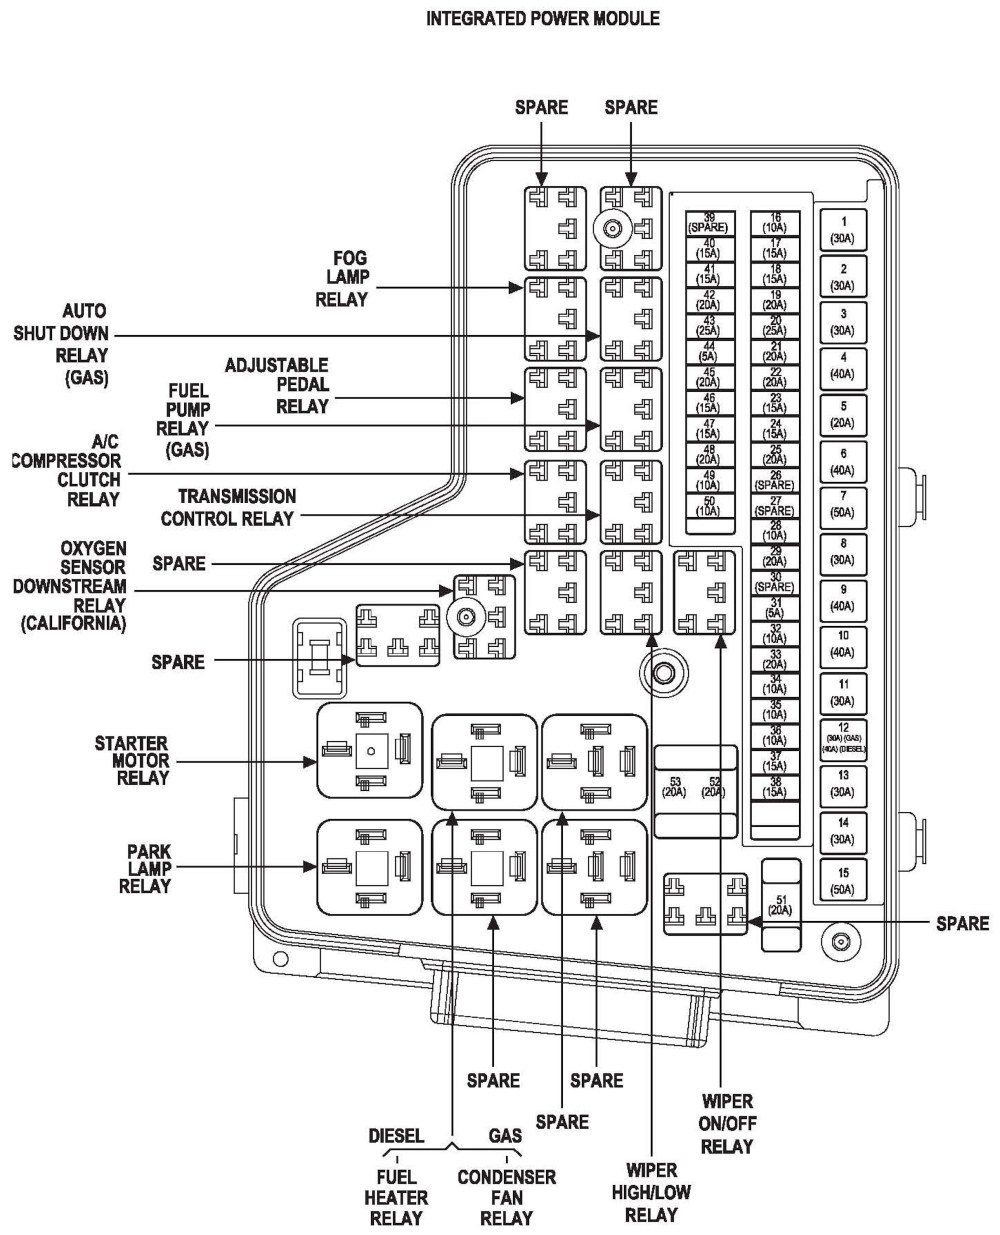 medium resolution of 2015 dodge ram fuse diagram wiring diagram used 2012 dodge avenger fuse box location 2012 ram fuse box